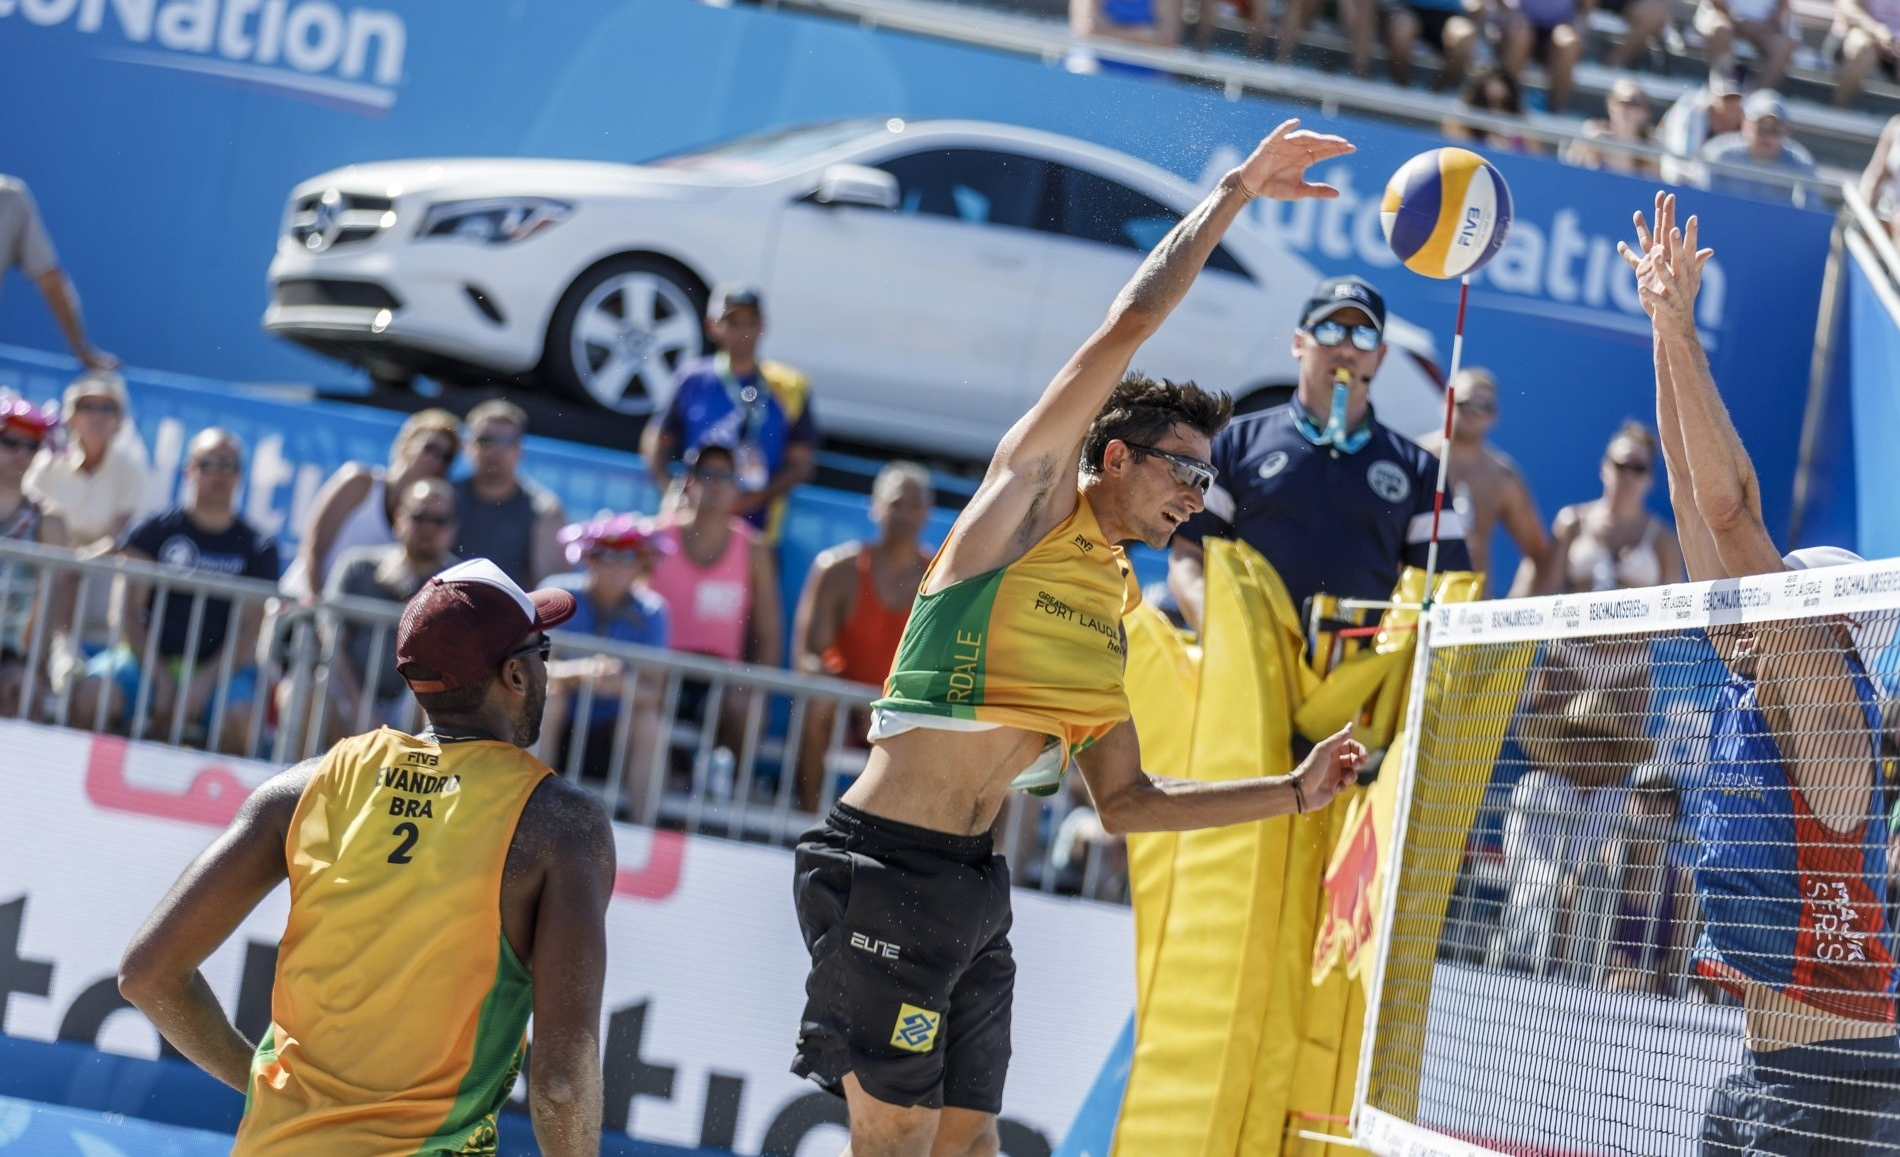 World Champions Evandro/Andre are in action early on day four of the Fort Lauderdale Major